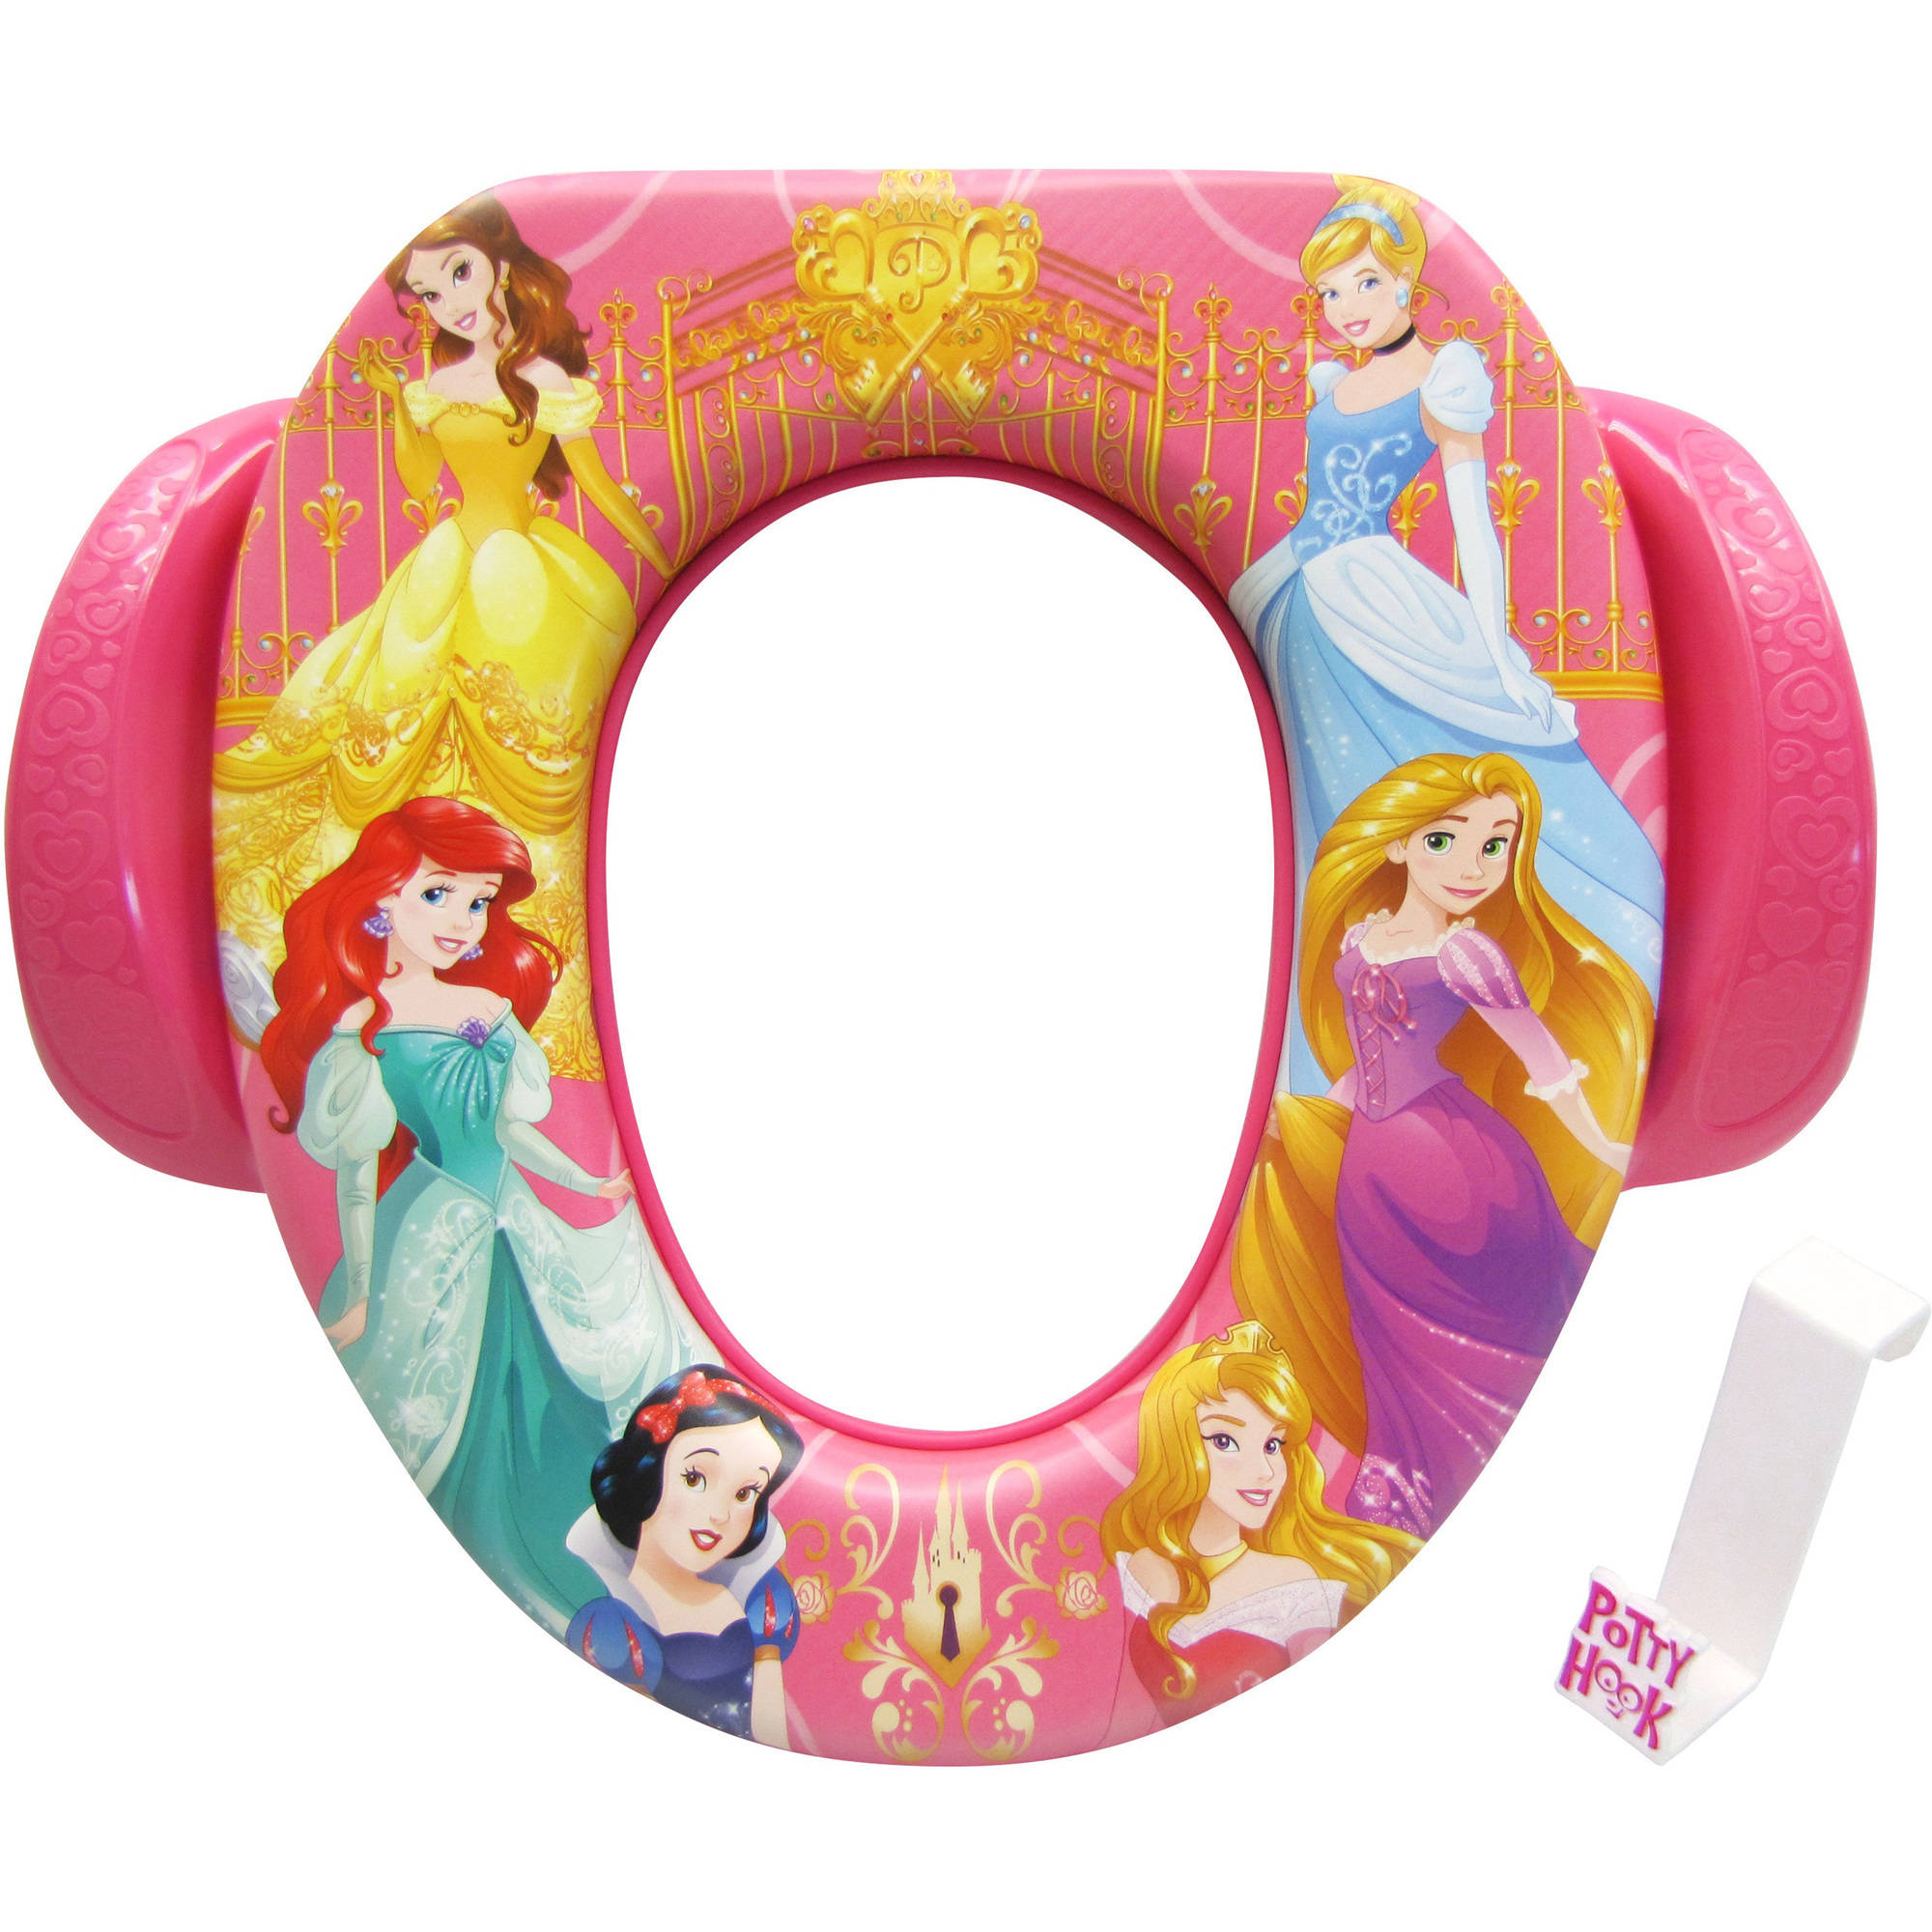 Princess Keys to my Heart Soft Potty Seat